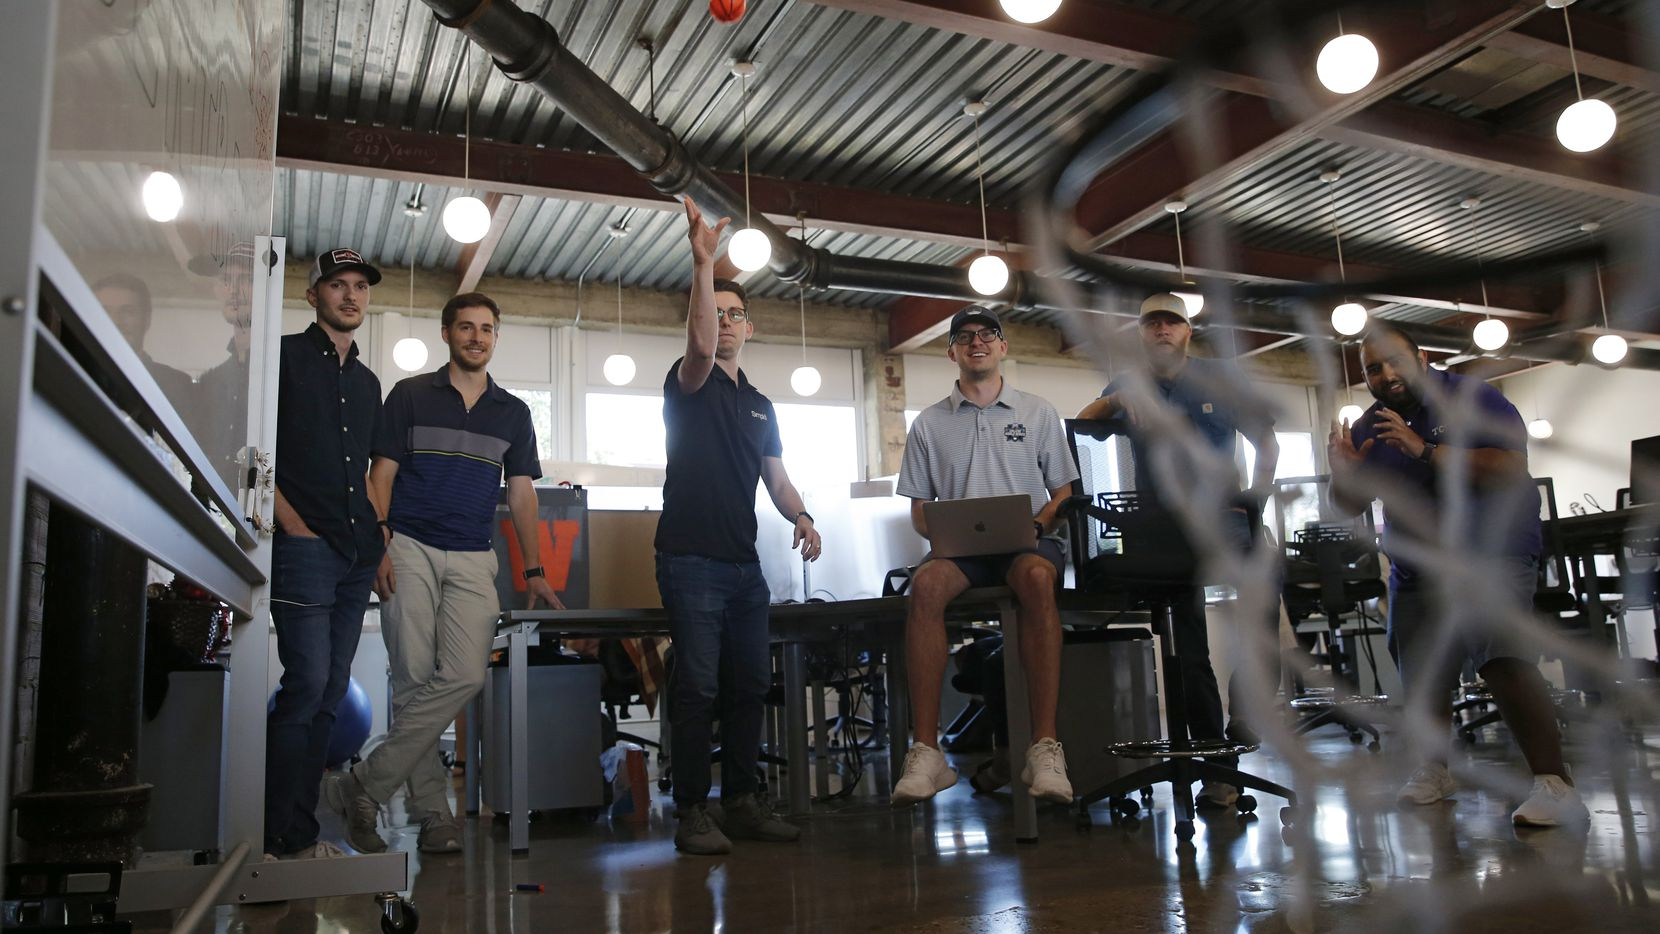 Jack Sperco takes a shot during a game of basketball at Simpli.fi in Fort Worth.